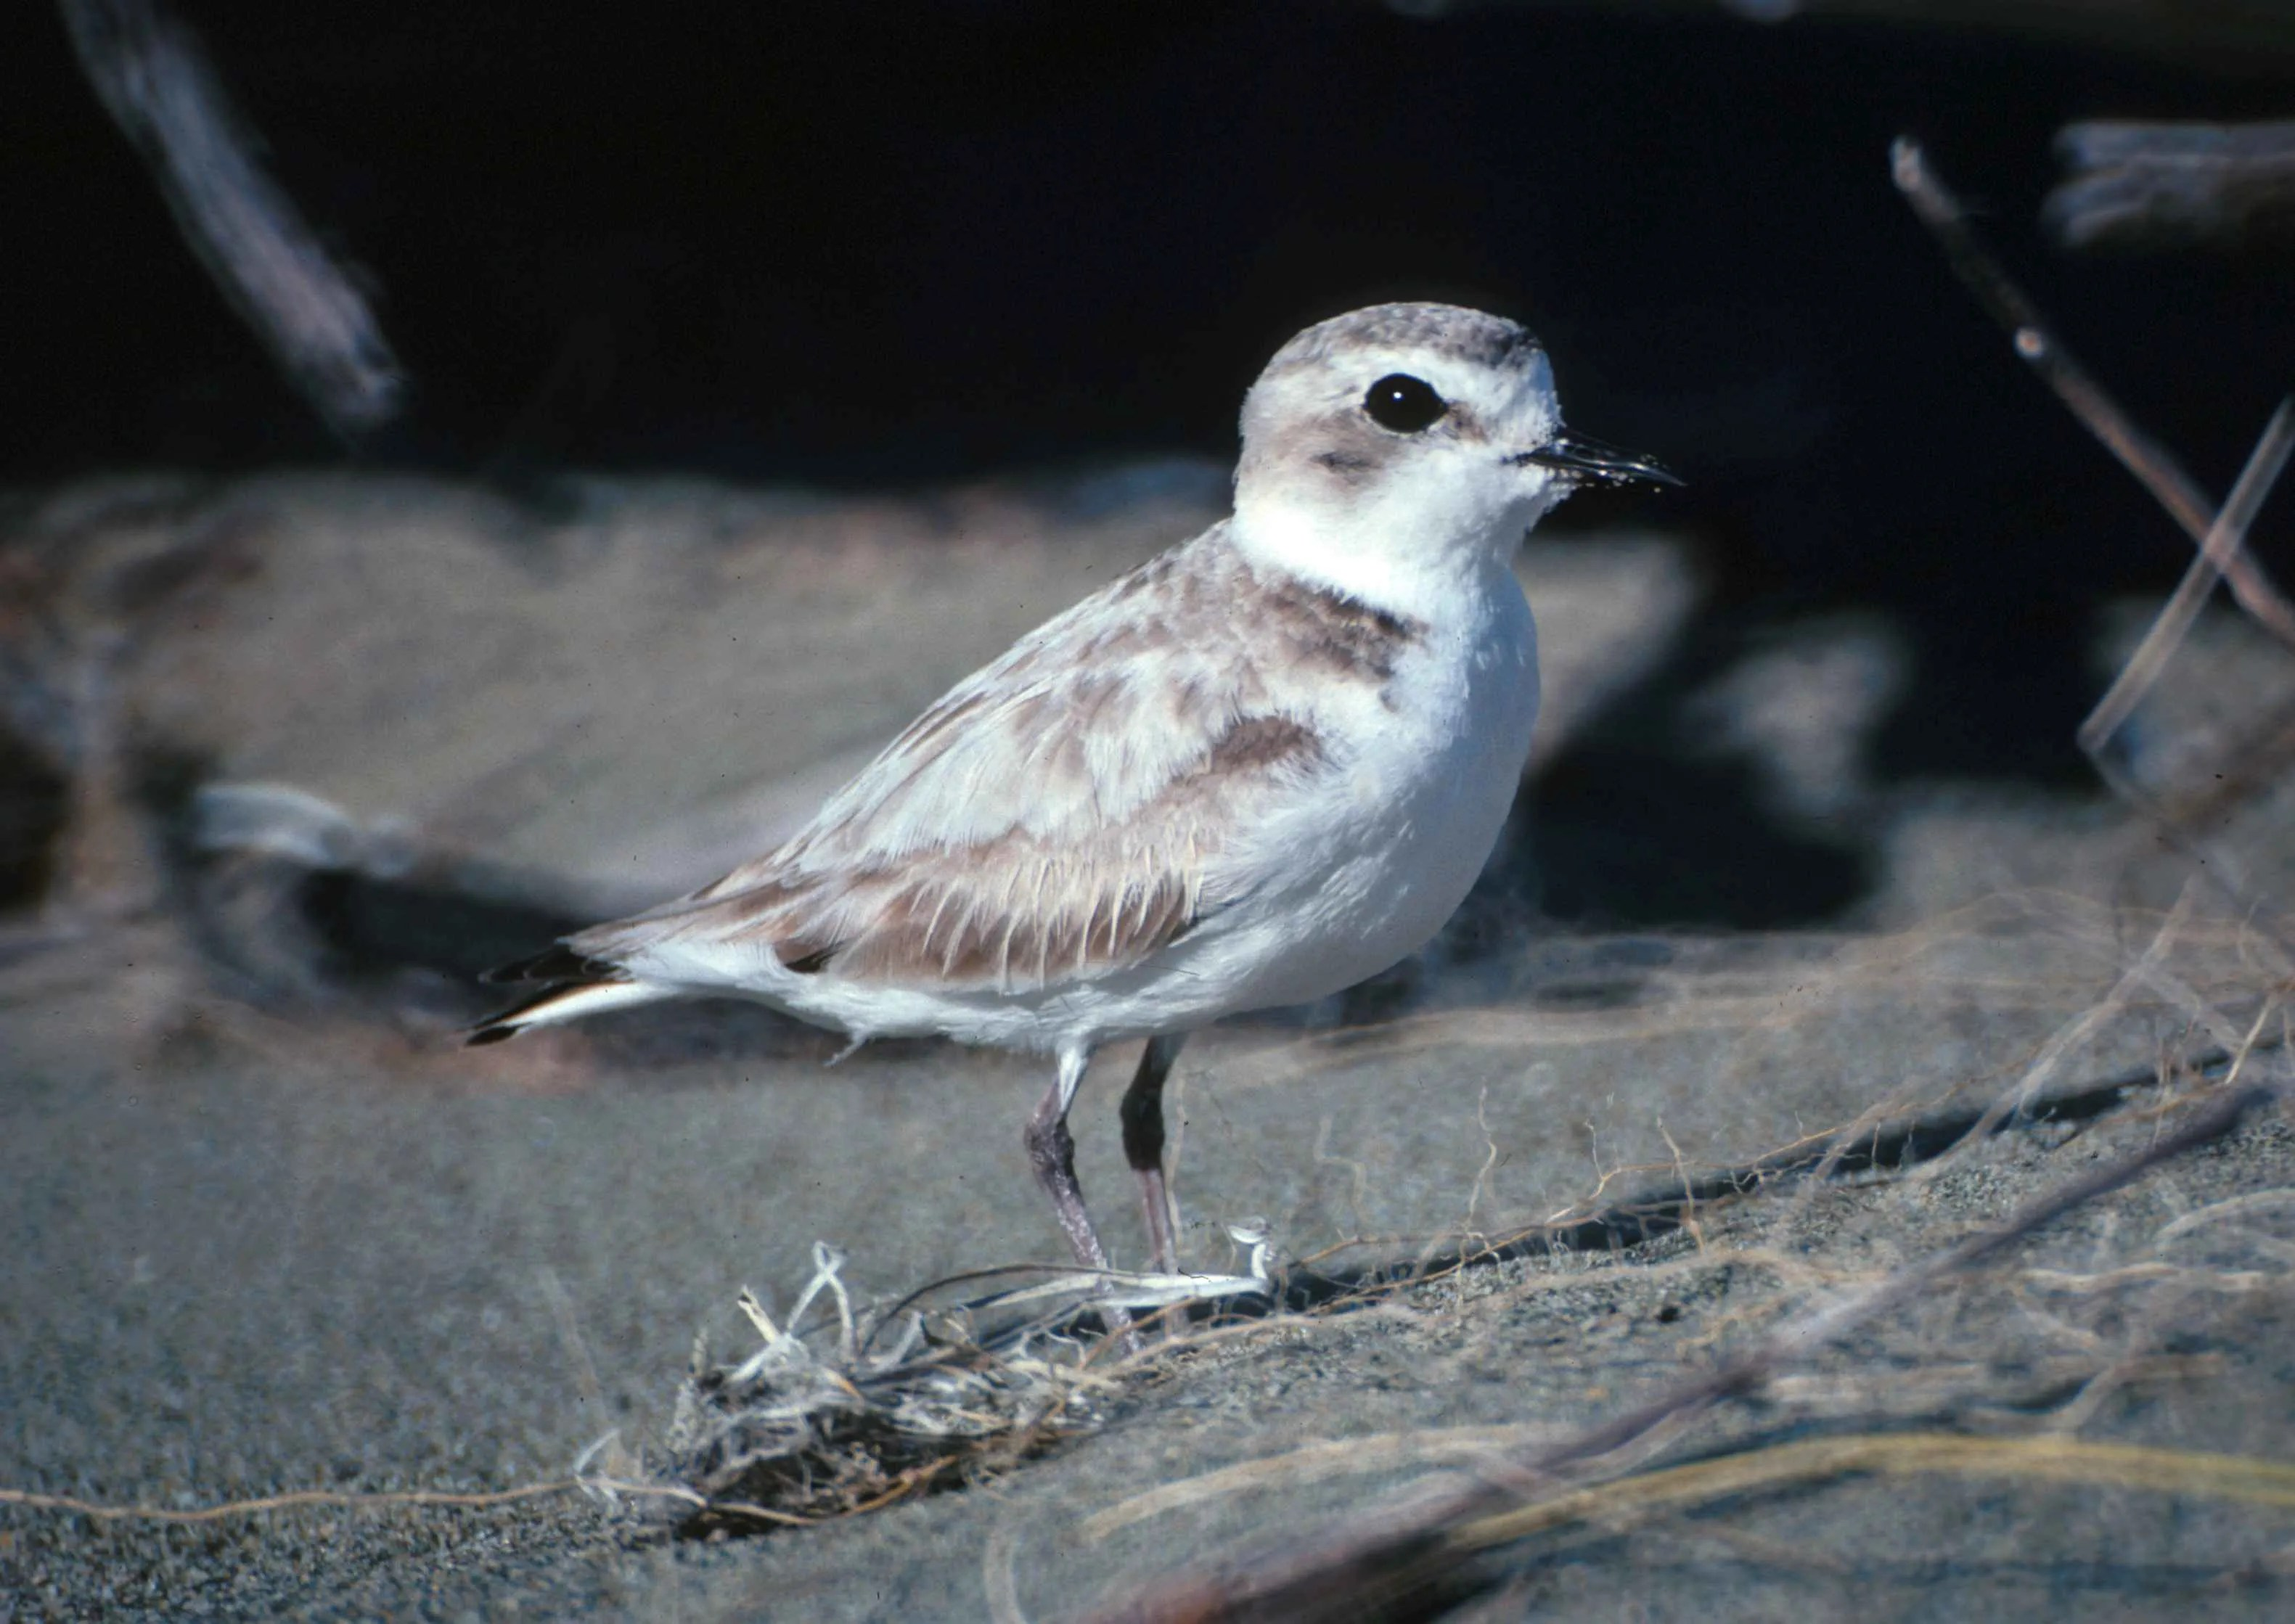 The move to ban off-highway vehicles from Oceano Dunes was made in part to protect endangered animals, like the snowy plover.